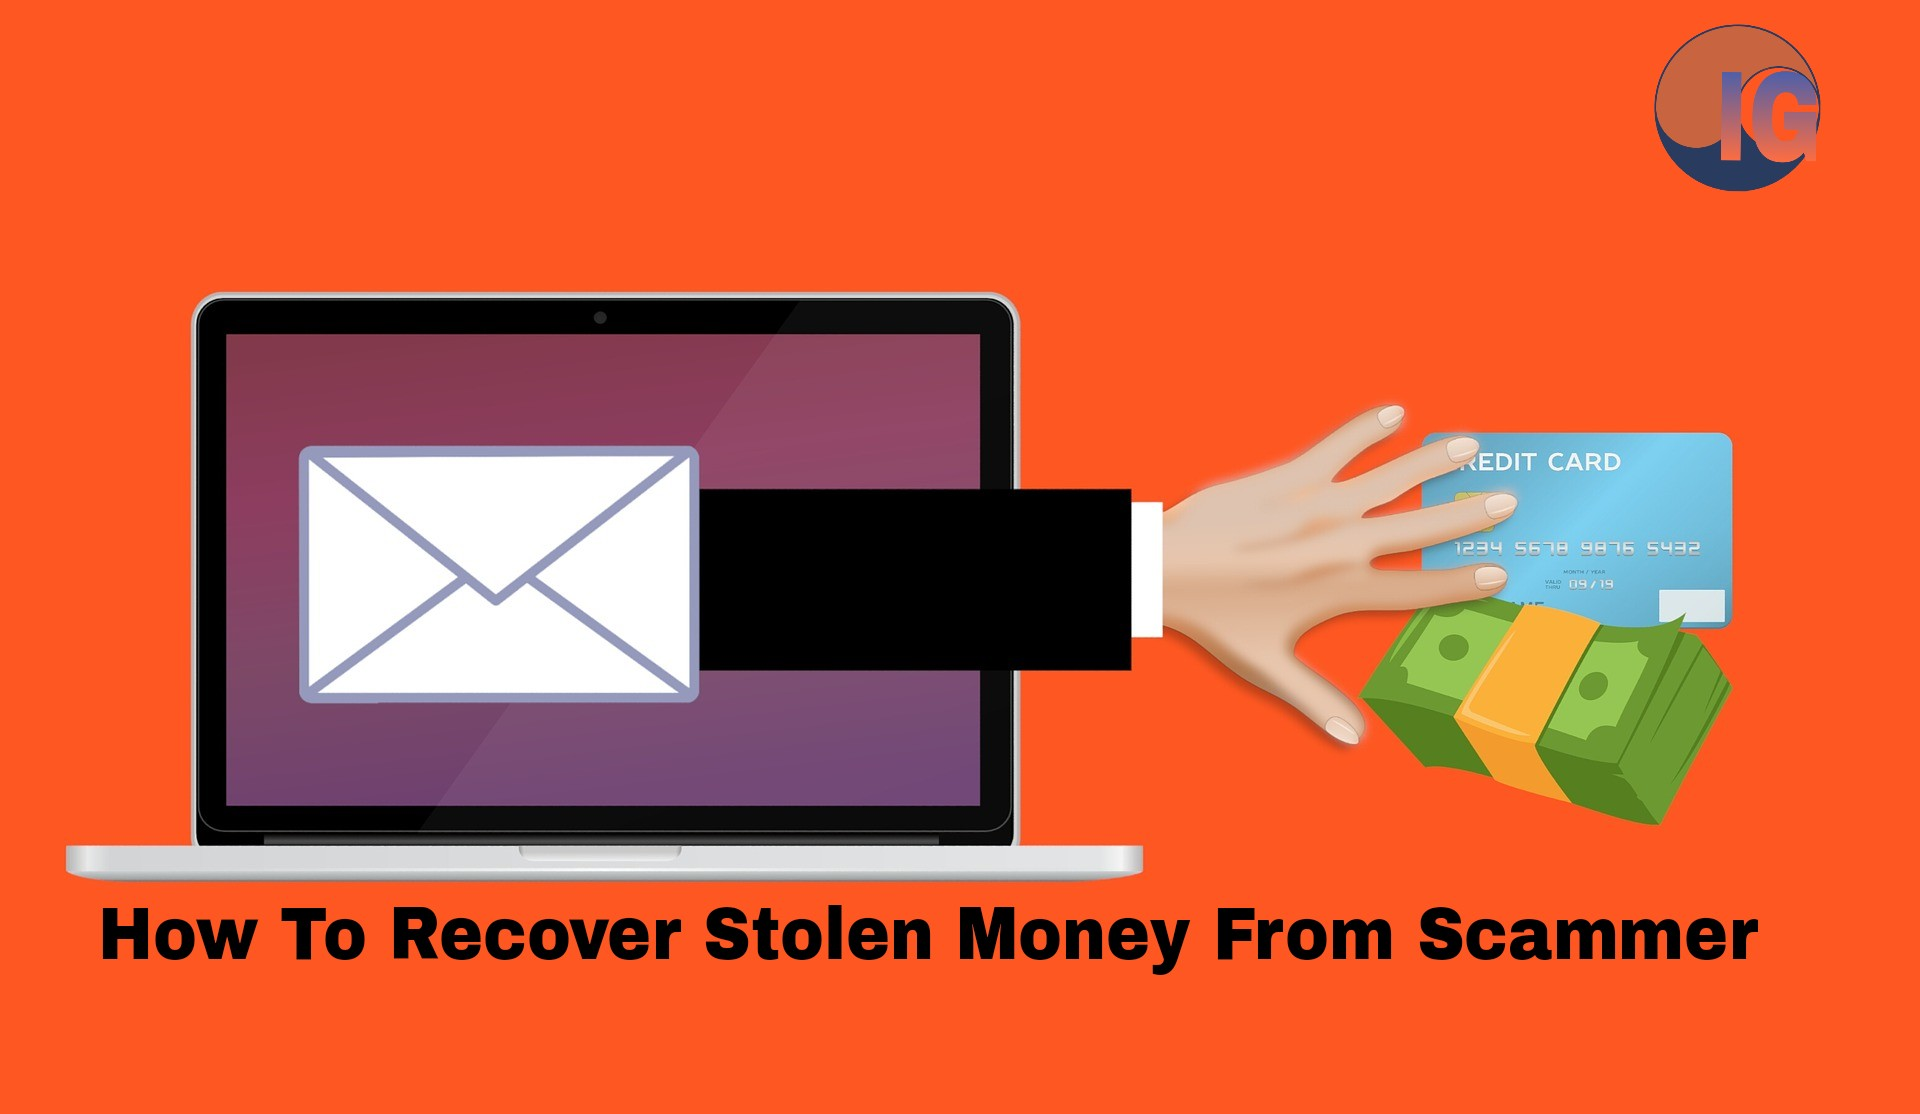 How To Retrieve Your Money After You Have Been Scammed in Nigeria